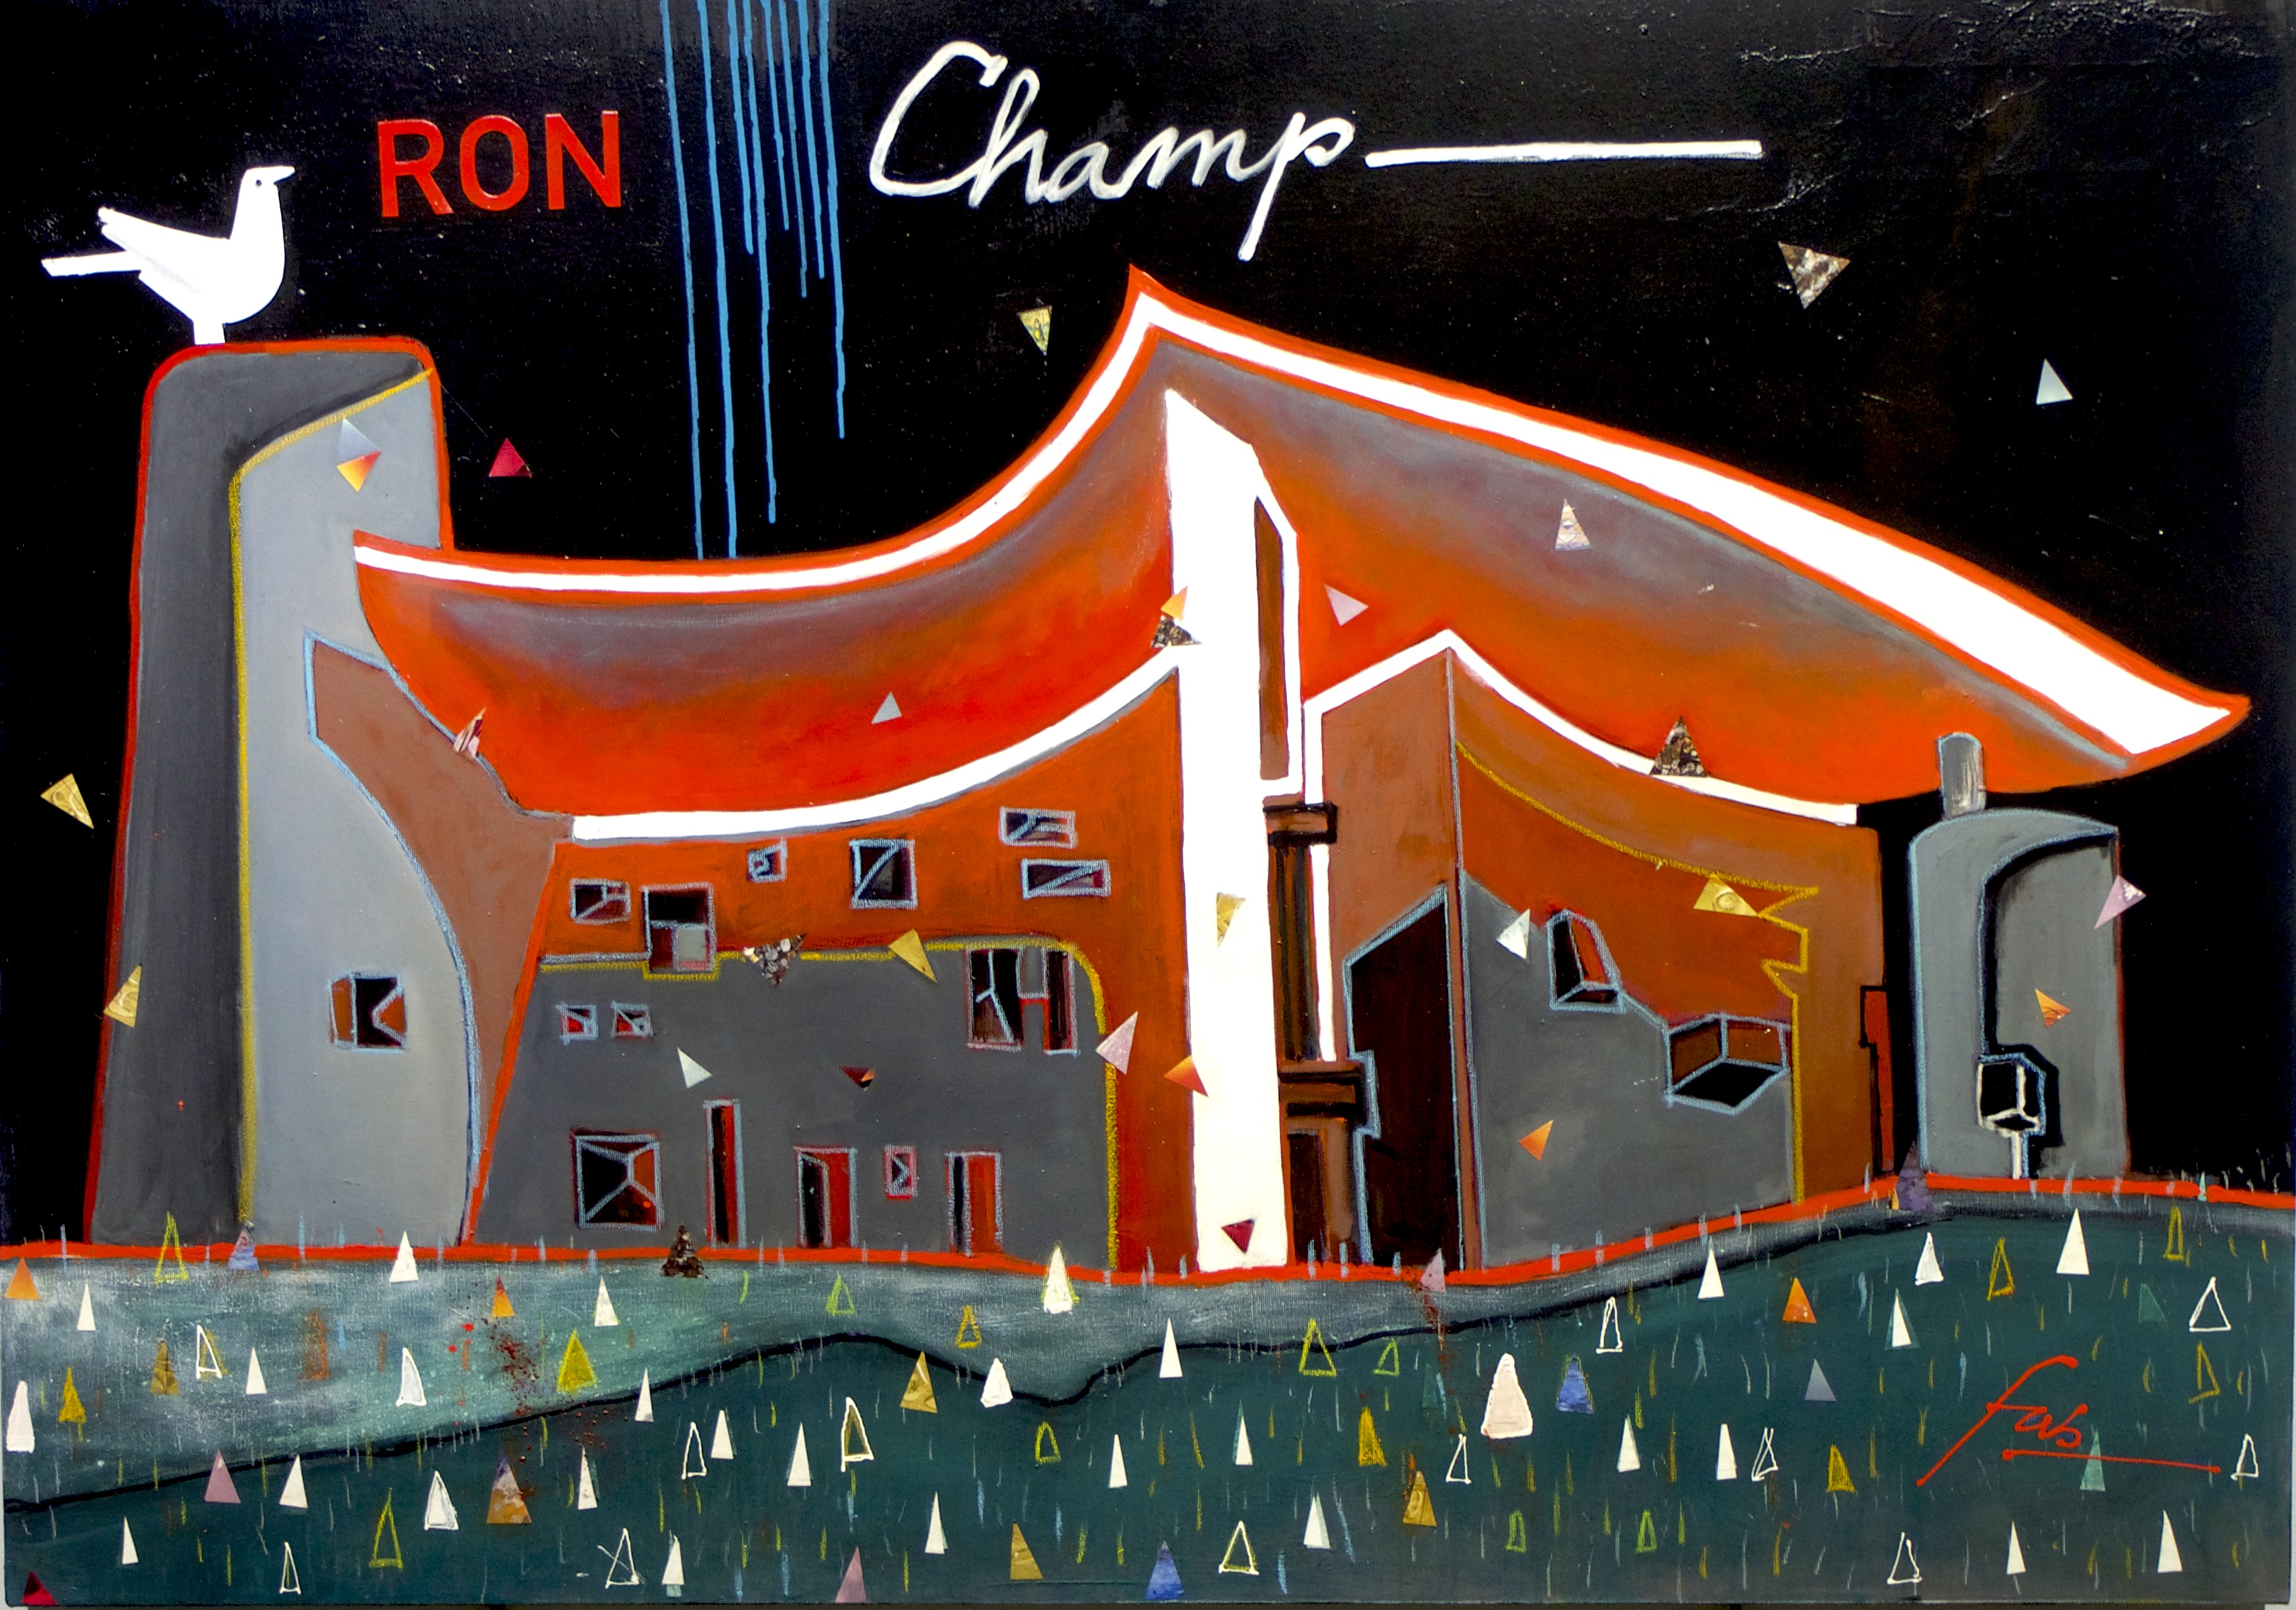 """<b>""""Ronchamp""""</b> <span style= """"font-size:14px"""">(2019)</span> <br><p style = """"font-size:14px"""">Acrylic on canvas<br>38 x 54 in.</p>"""